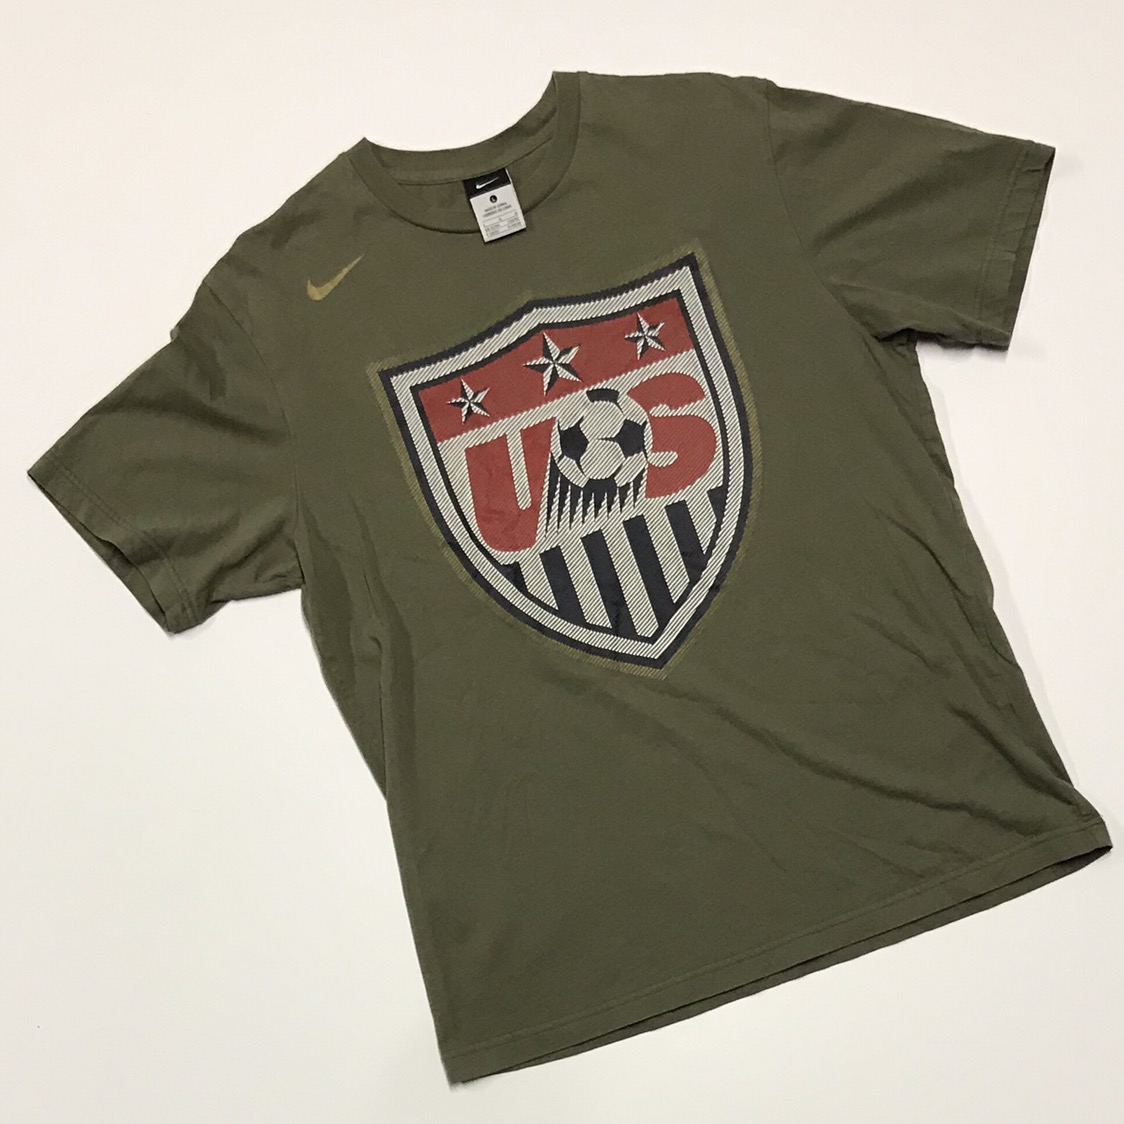 cabee5749 Nike Team Usa Soccer Shirt – EDGE Engineering and Consulting Limited